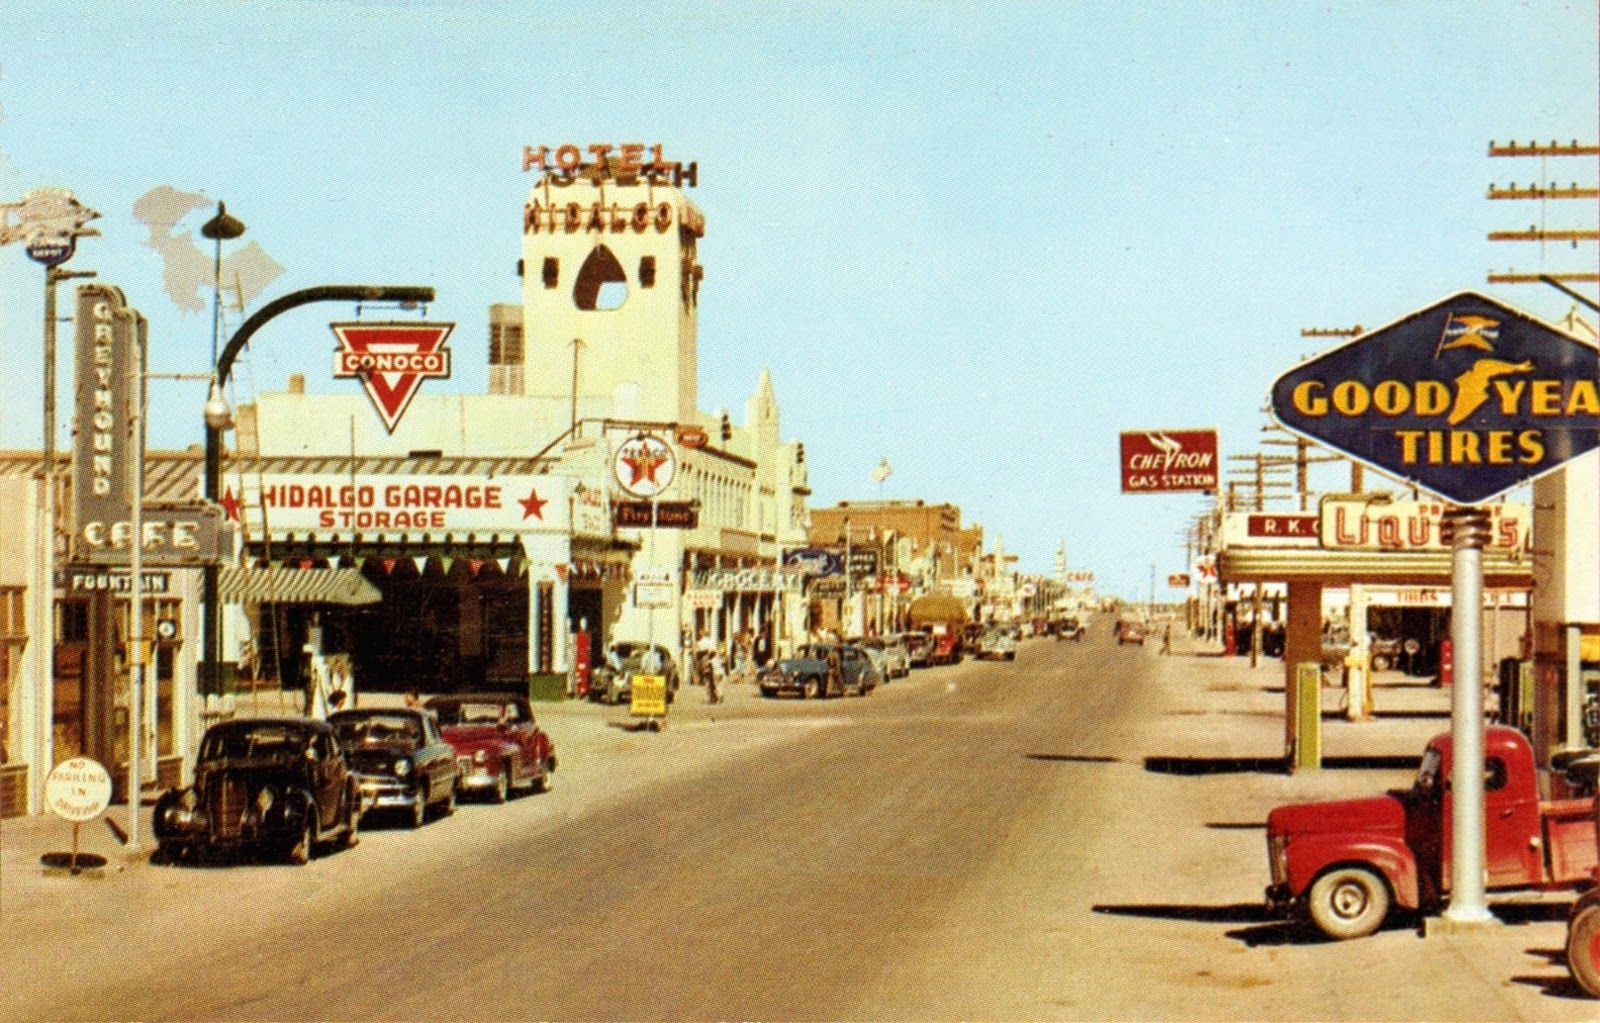 This 1950s Postcard View Shows A Reasonably Bustling Scene